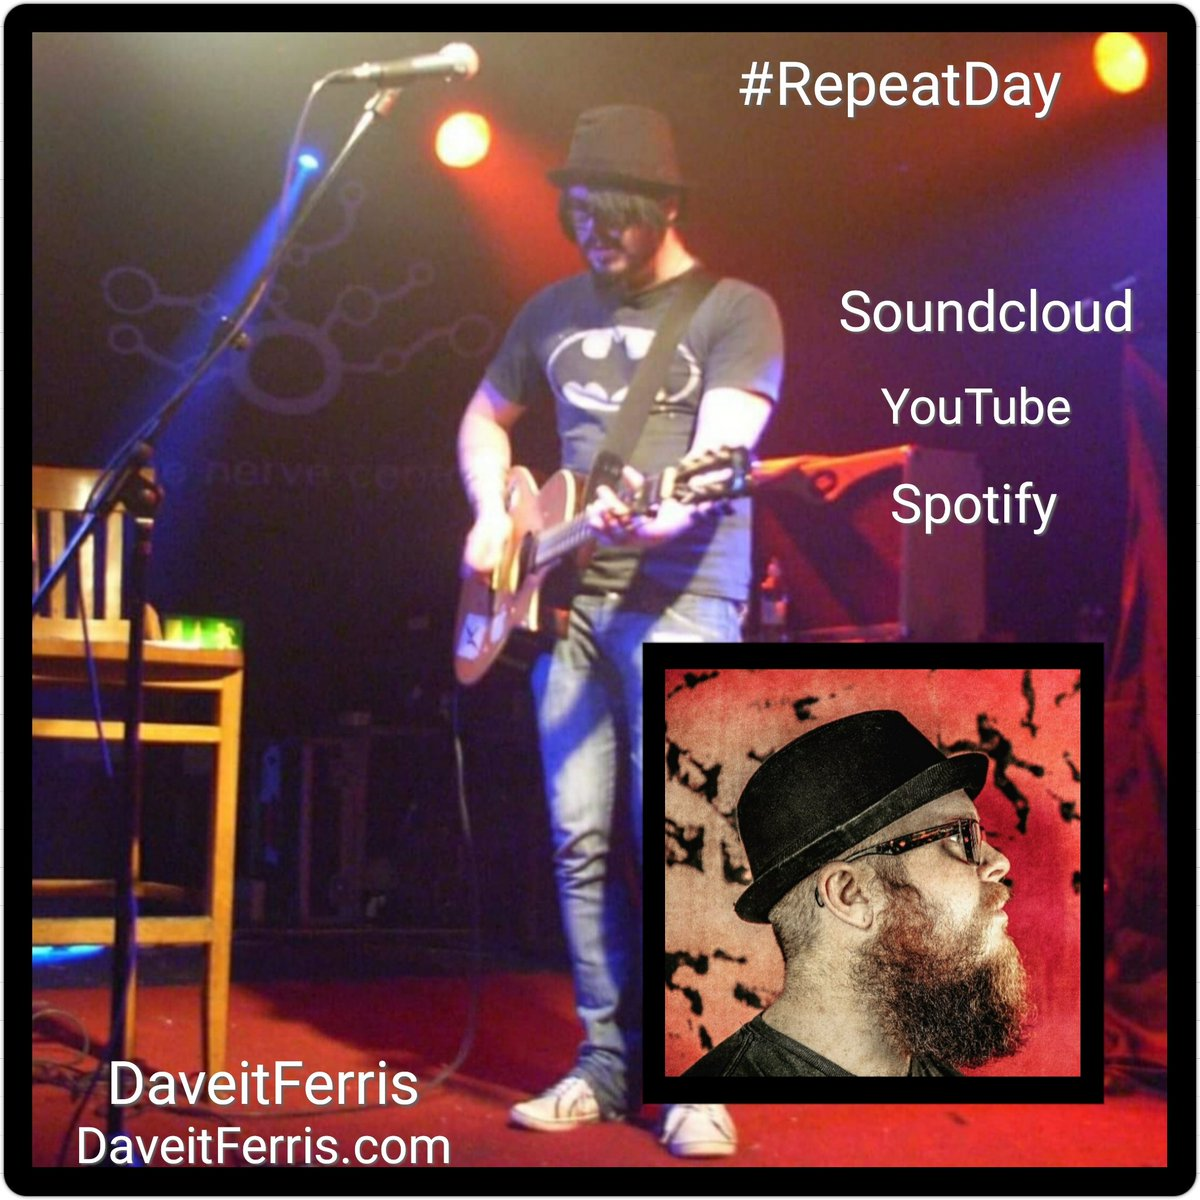 #RepeatDay Be mesmerized by the tunes of @DaveitFerris, with songs that are so insanely good you'll have them on repeat!!!   https://t.co/4yNPsB0w8p  https://t.co/dn3XghnO9d  https://t.co/7SW97ina8k  To Purchase ⤵️⤵️⤵️  https://t.co/EGLZQRZTZe  https://t.co/OJj0l0ZcSE https://t.co/eQCFvK1EpO